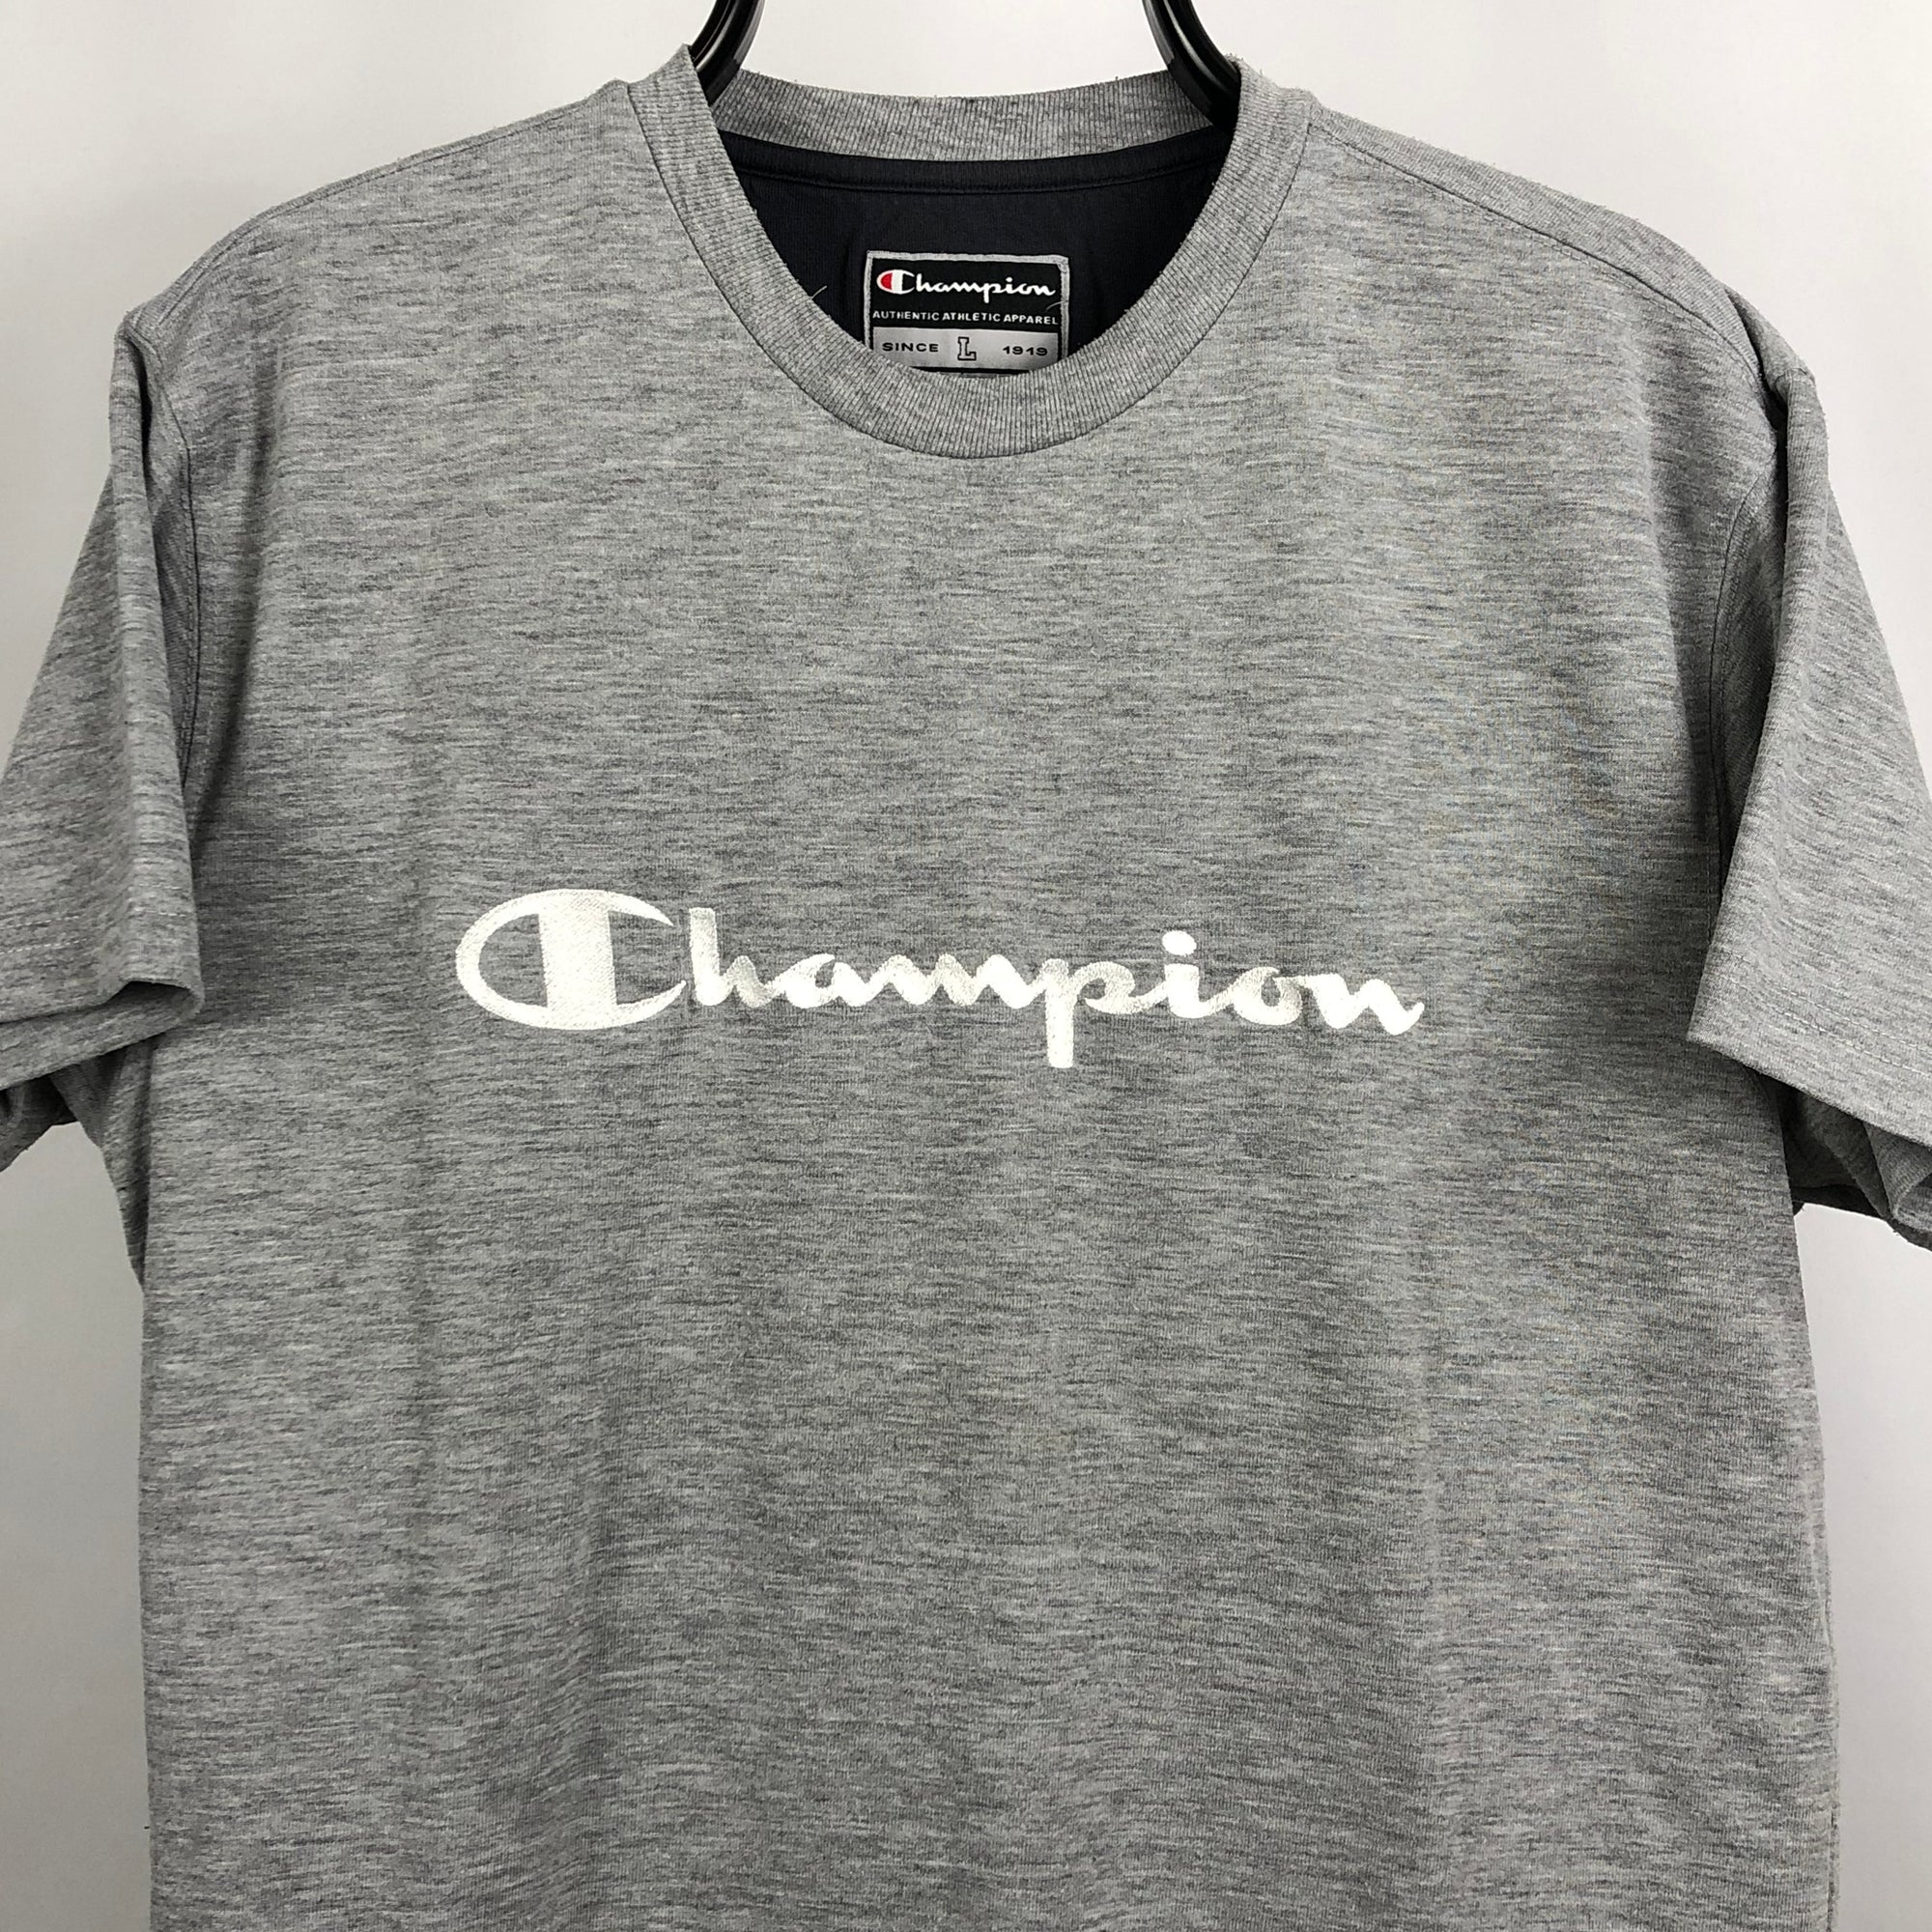 Vintage Champion Embroidered Spellout Tee - Men's Medium/Women's Large